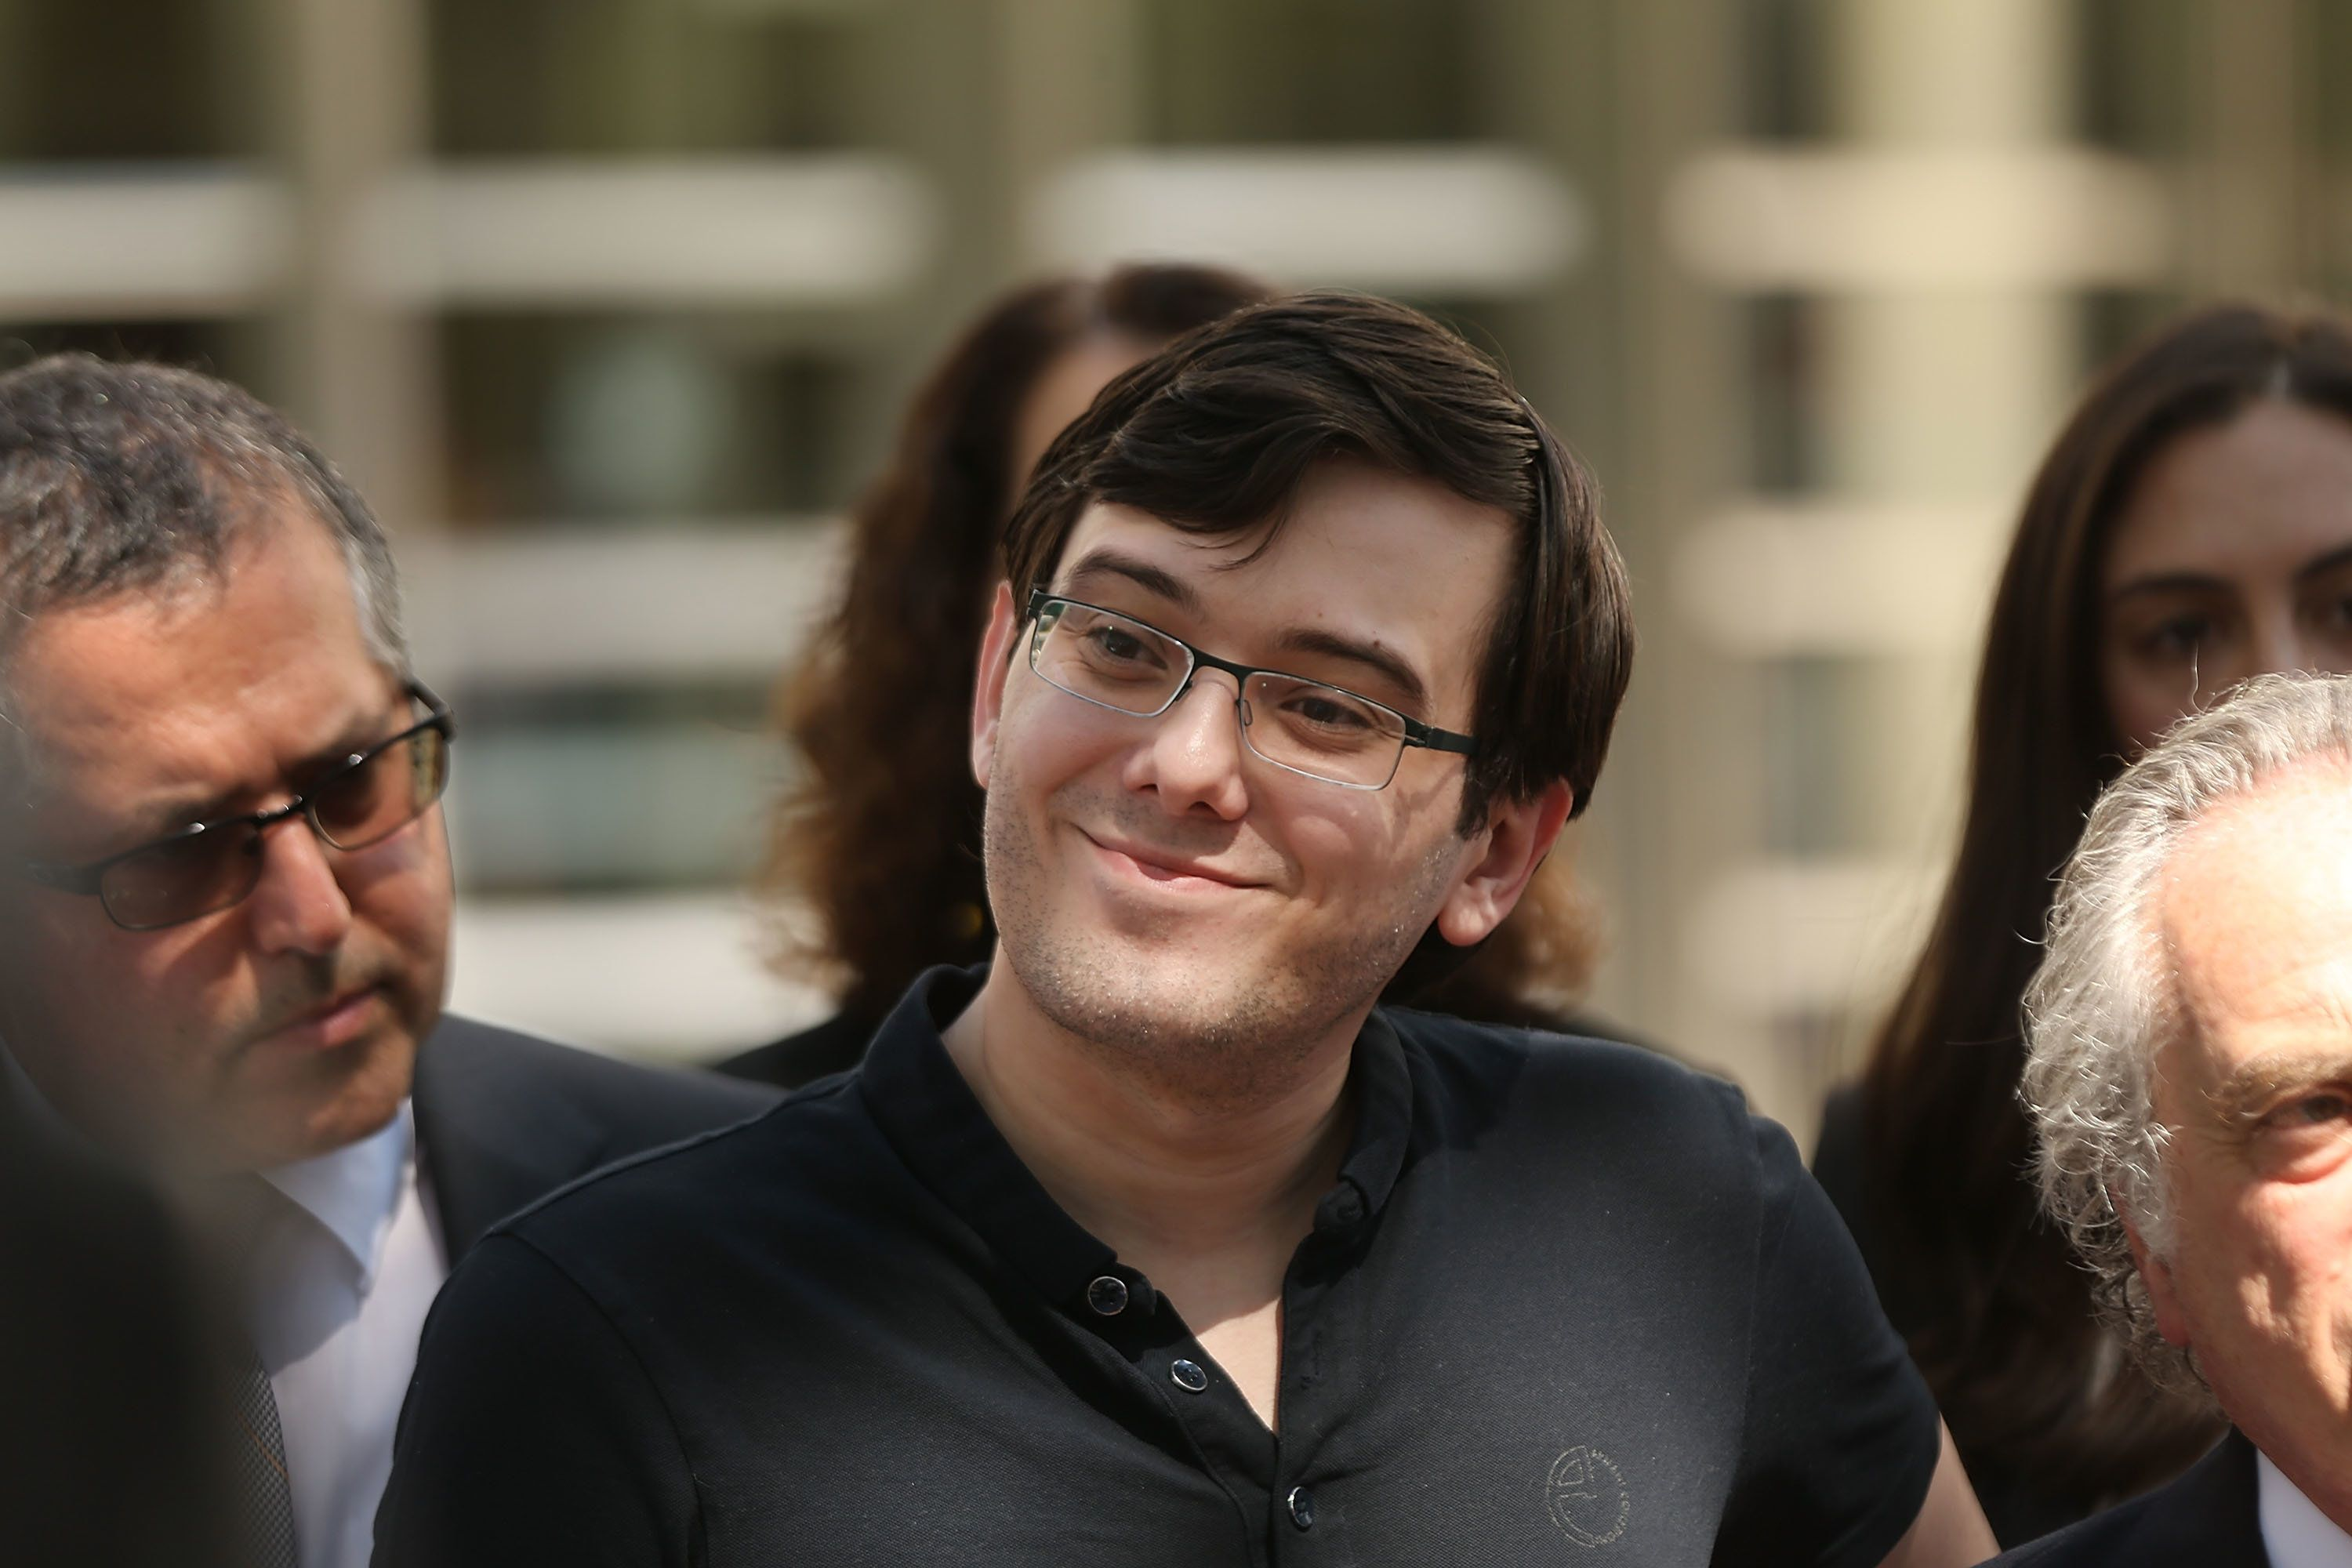 NEW YORK, NY - AUGUST 04:  Former pharmaceutical executive Martin Shkreli smiles while speaking to the media in front of U.S. District Court for the Eastern District of New York with members of his legal team after the jury issued a verdict, August 4, 2017 in the Brooklyn borough of New York City. Shkreli was found guilty on three of the eight counts involving securities fraud and conspiracy to commit securities and wire fraud.  (Photo by Spencer Platt/Getty Images)